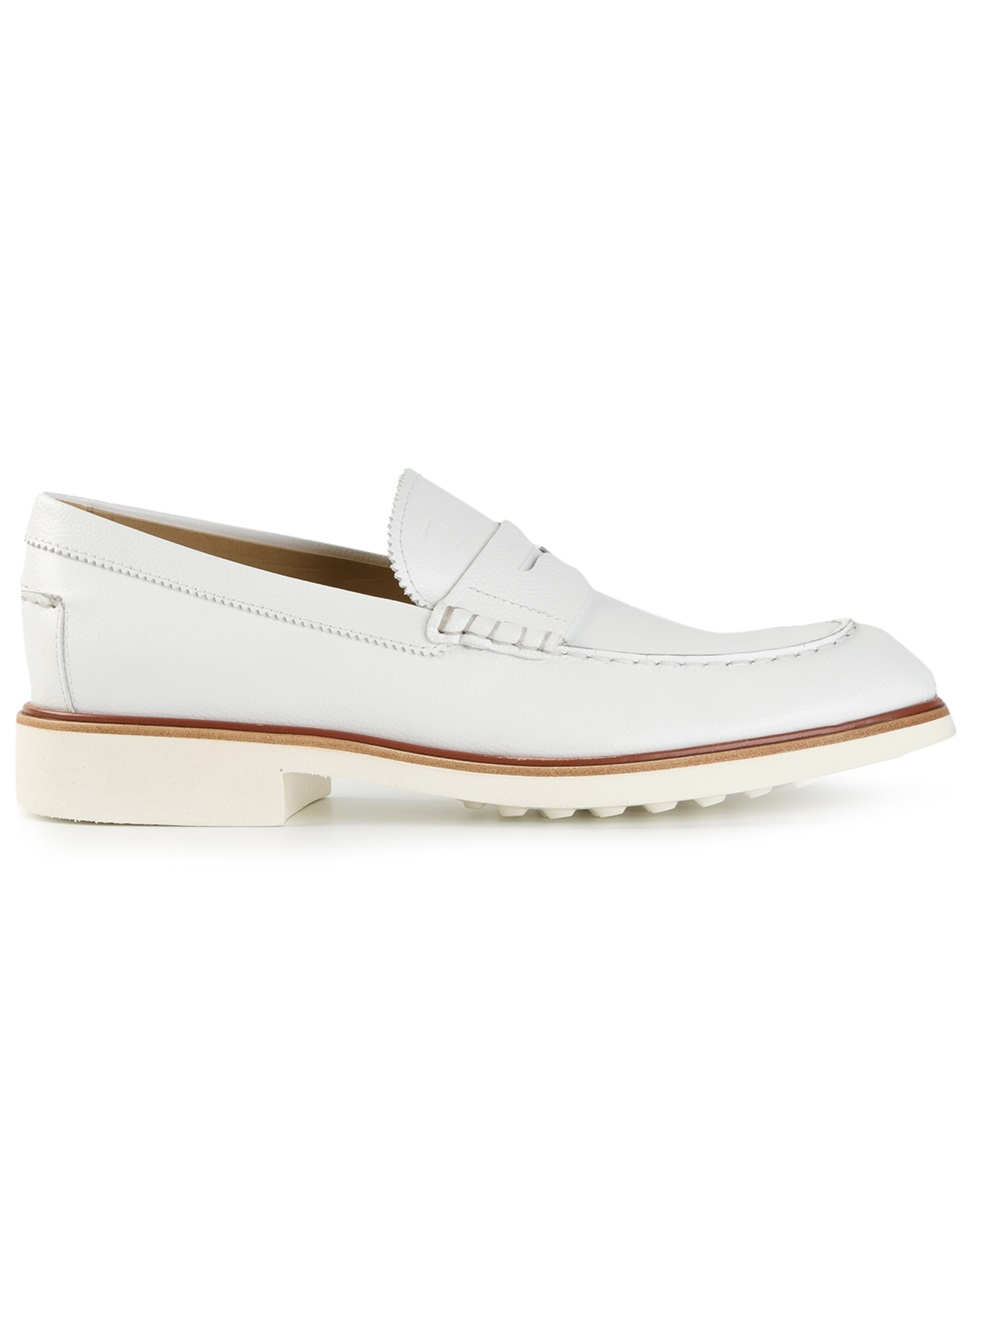 sports shoes 2da9d 7f44f tods-white-classic-penny-loafers-product-1-18680537-1-863251205-normal.jpeg